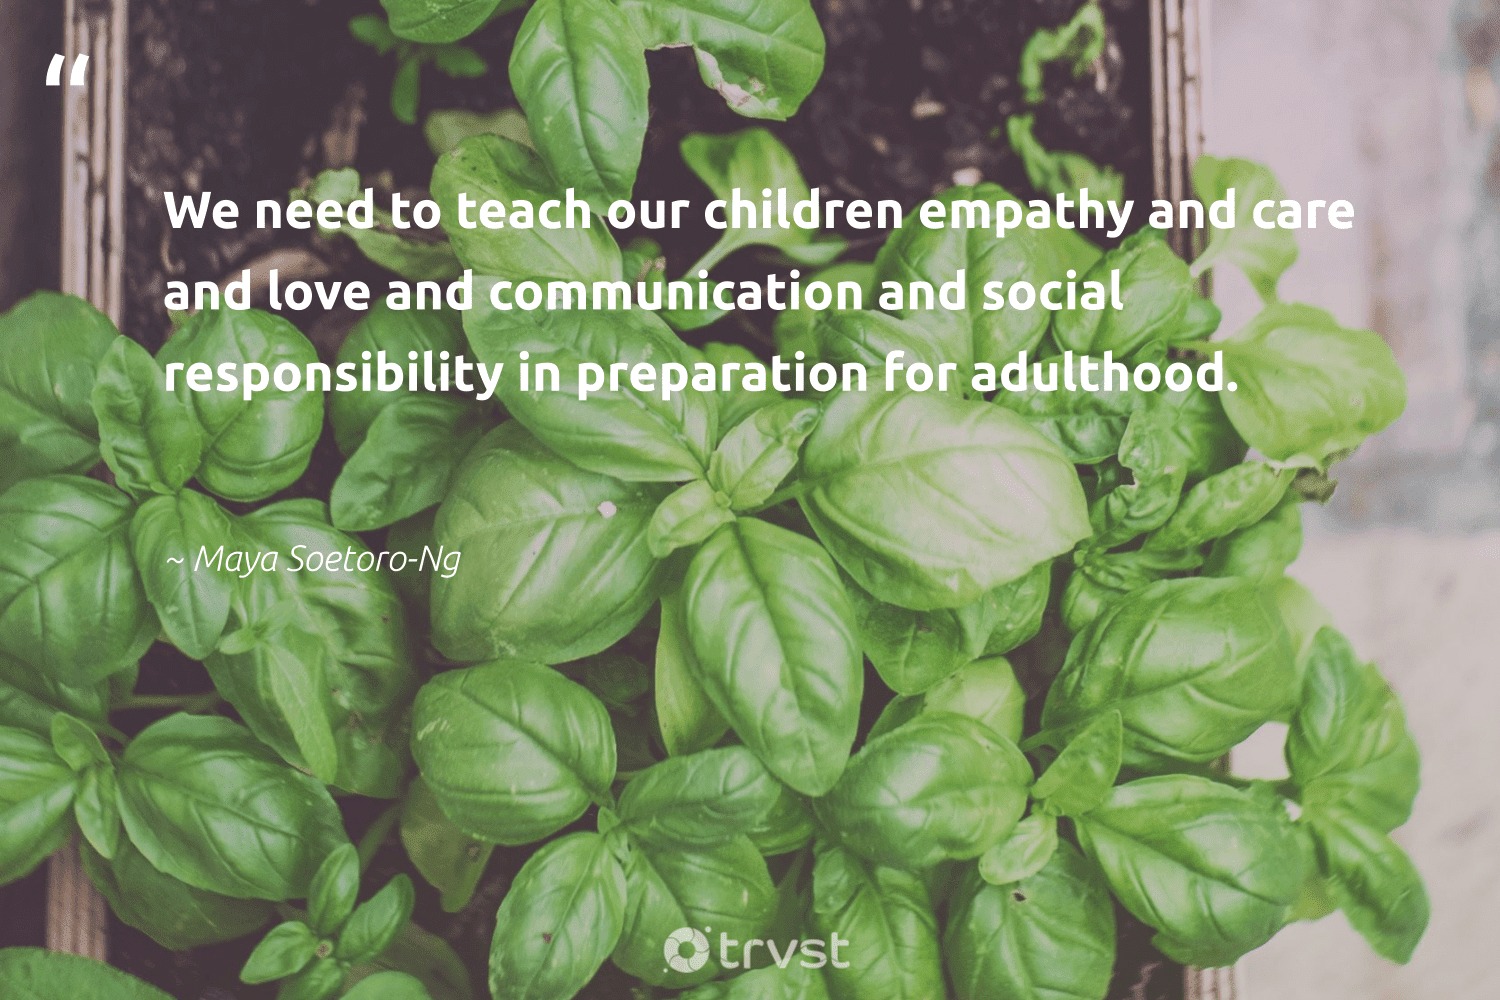 """""""We need to teach our children empathy and care and love and communication and social responsibility in preparation for adulthood.""""  - Maya Soetoro-Ng #trvst #quotes #love #children #bethechange #thinkgreen #fashion #changetheworld #gogreen #planetearthfirst #greenliving #socialimpact"""